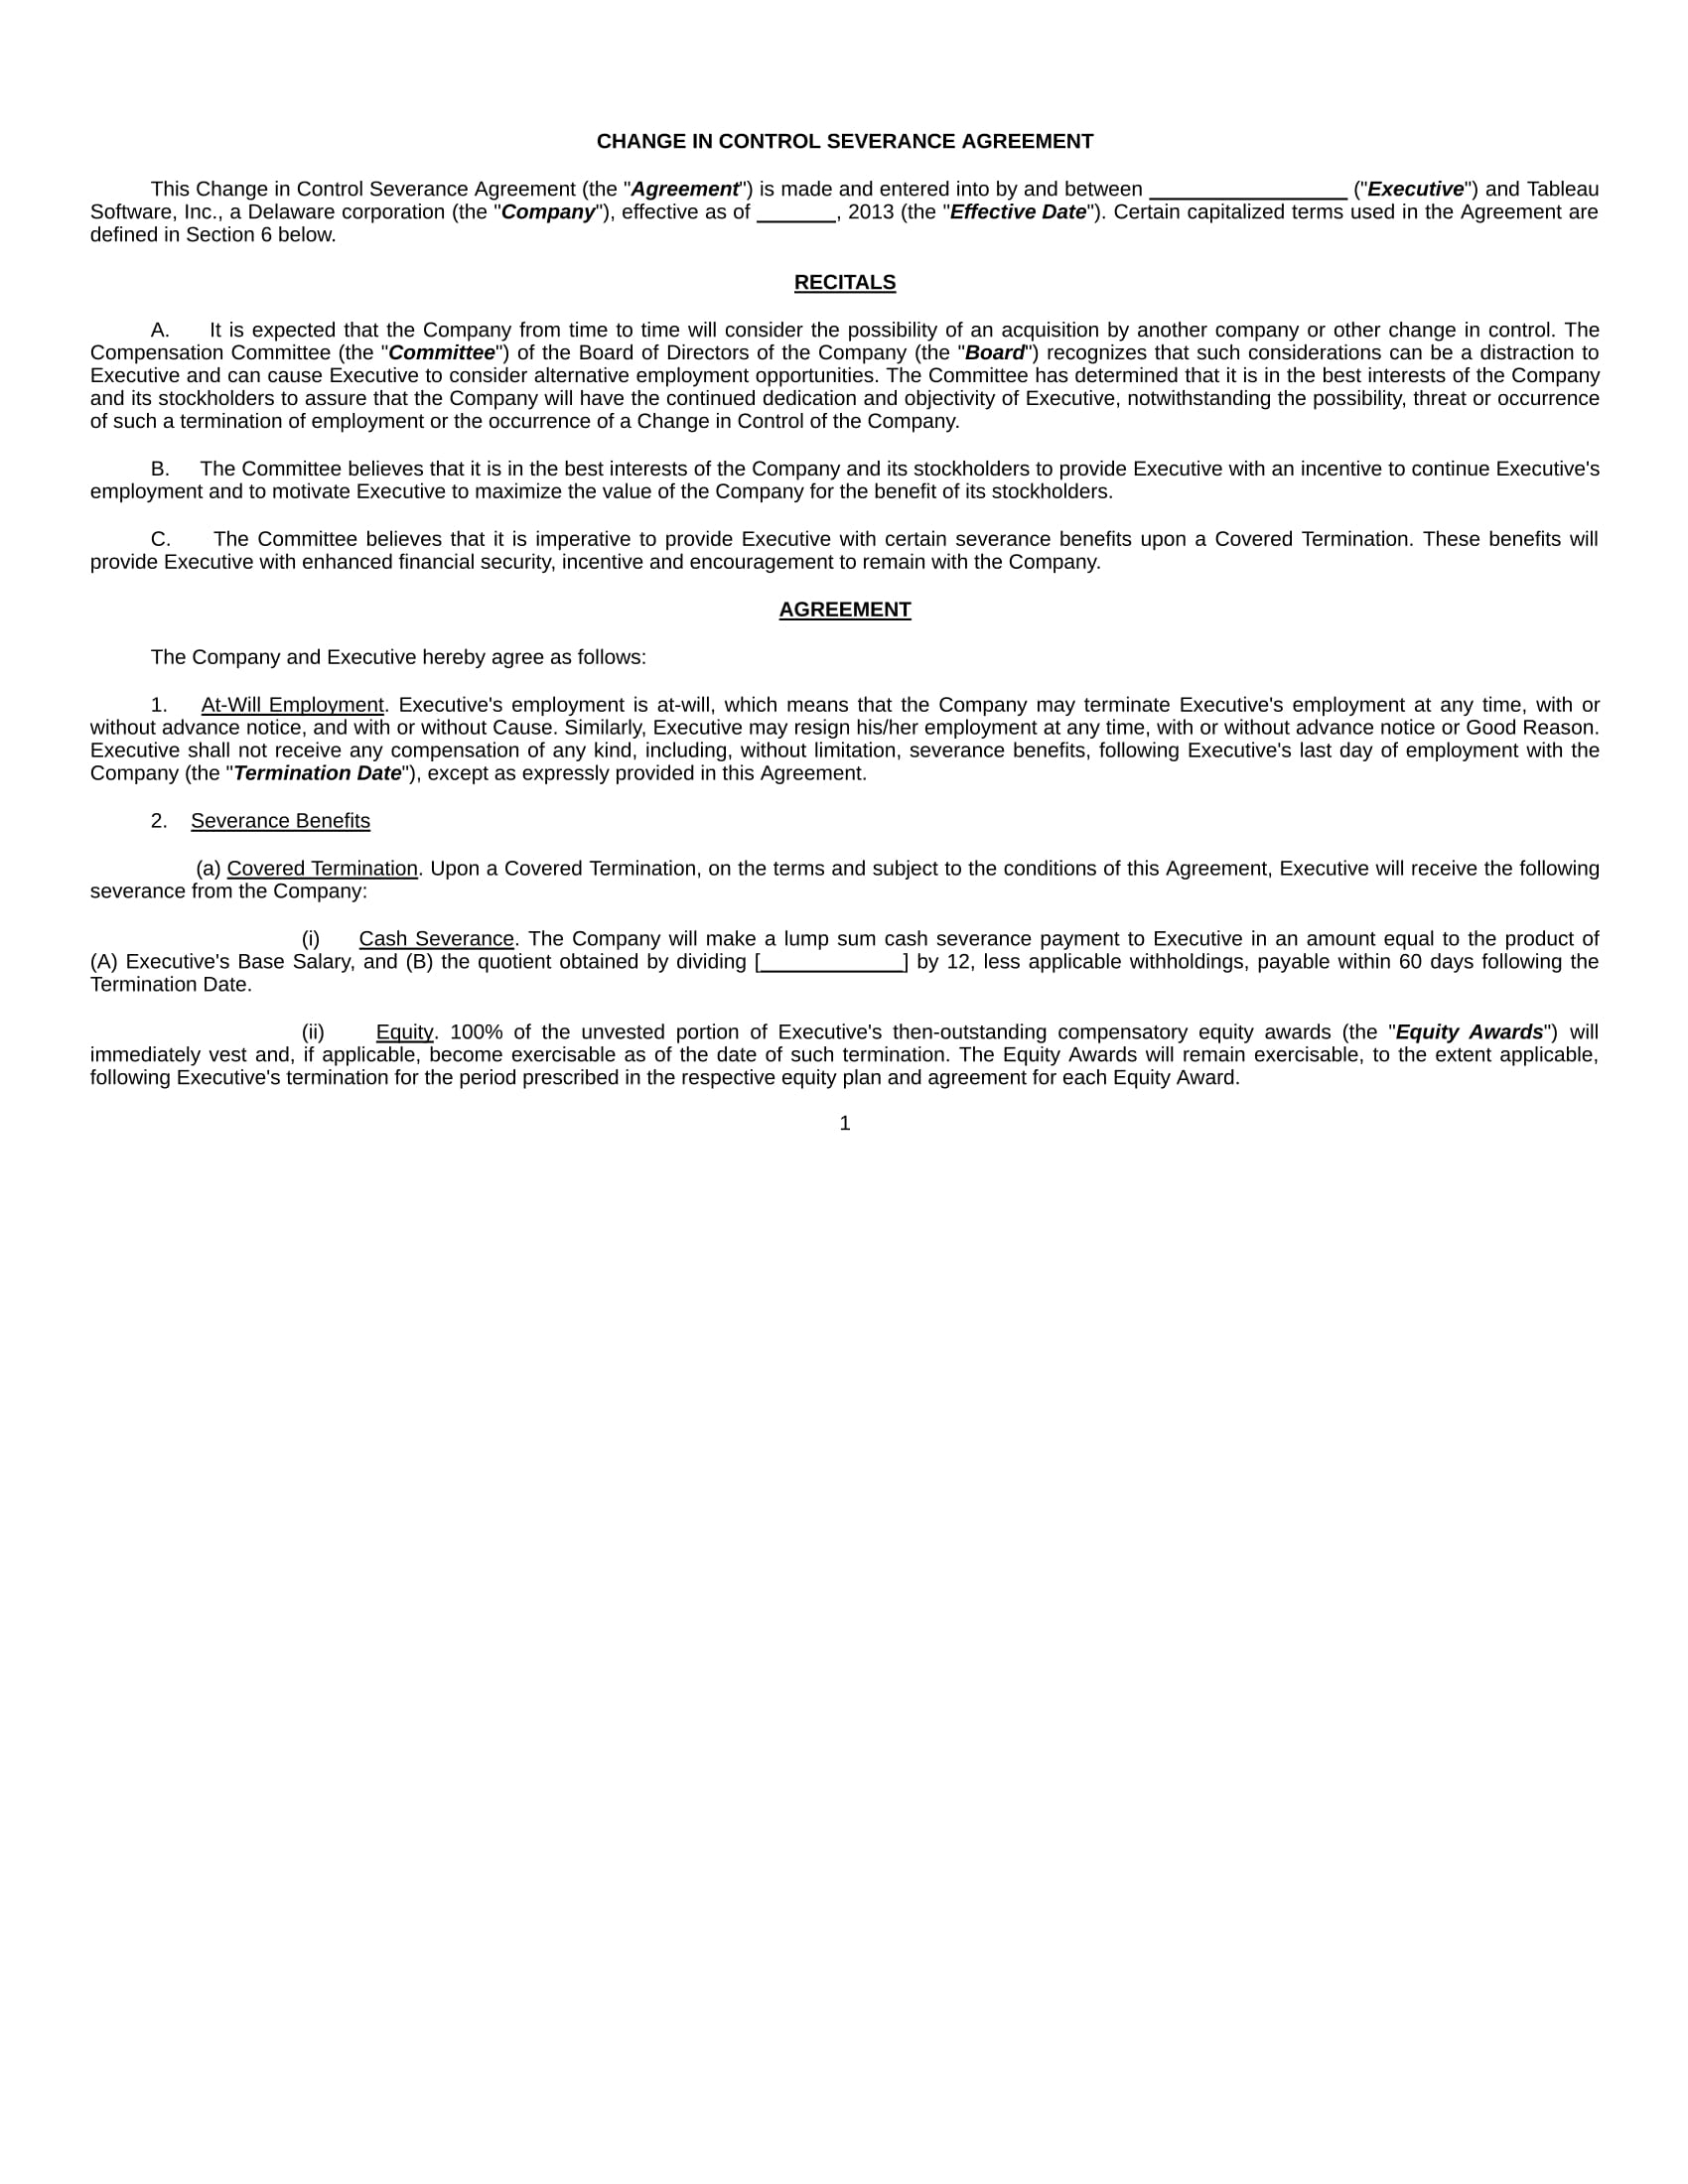 2 Executive Protection Agreement Change In Control Long Forms Pdf